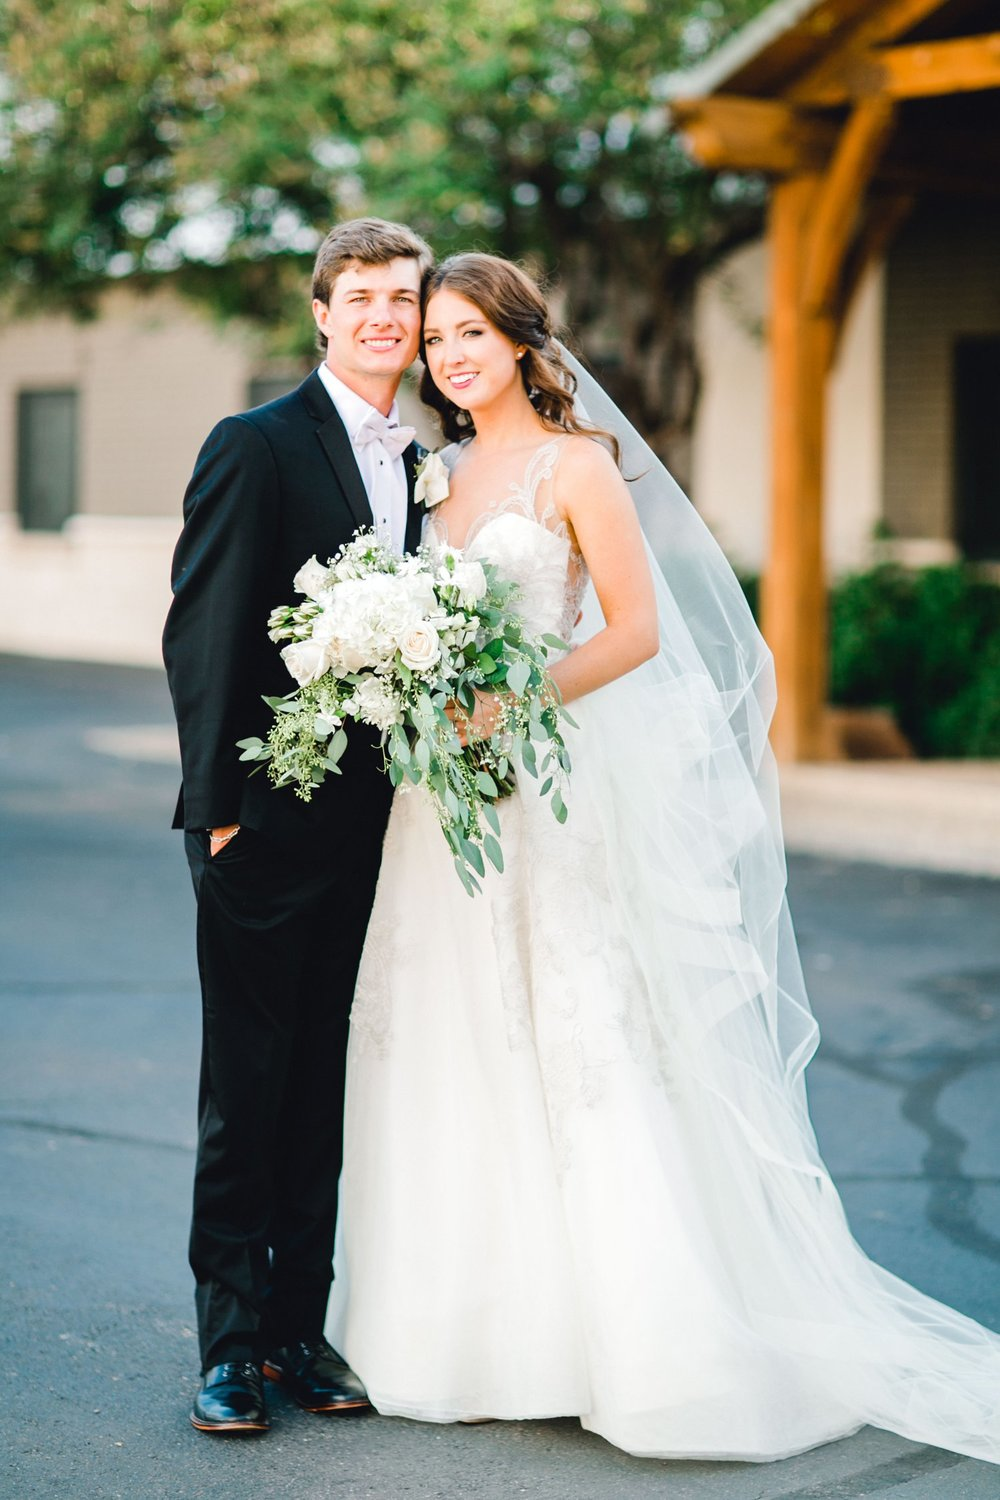 Hunter_and_Molly_Rawls_ALLEEJ_Lubbock_WEDDING_Legacy_Event_Center_0150.jpg